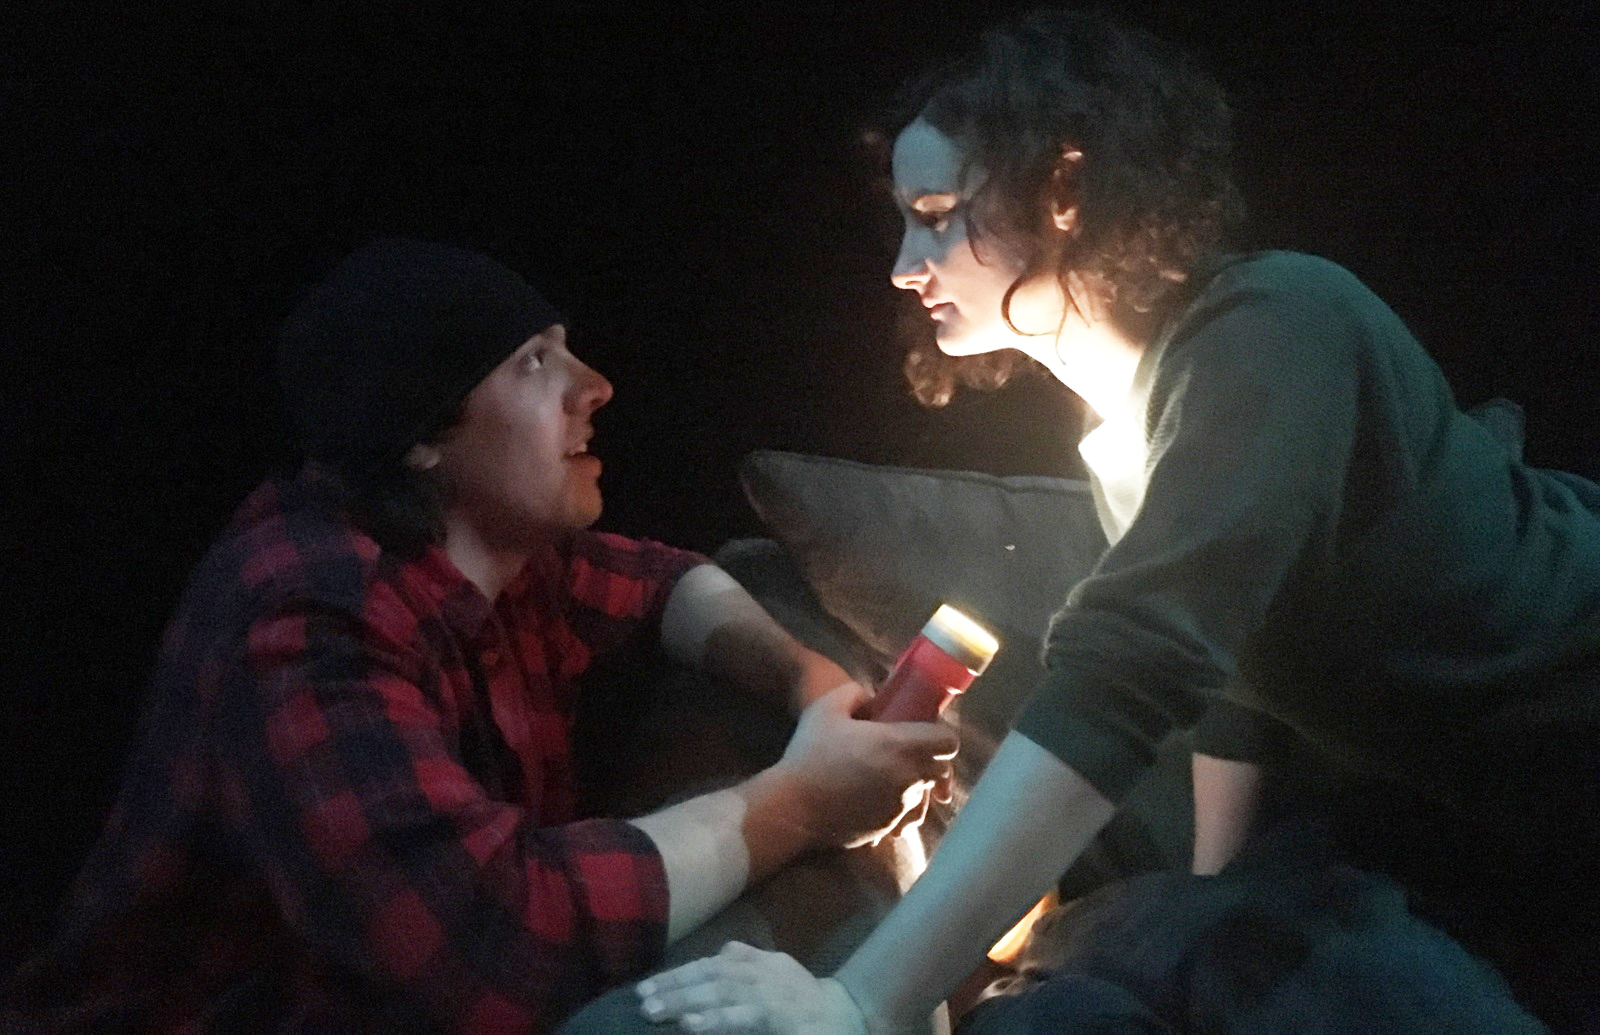 """Kyle Baran and Becky Globus star in Justin Karcher's """"When Blizzard Babies Turn to Stone.' The play, part of 'Buffalo Quickies,' is set almost entirely in the dark."""